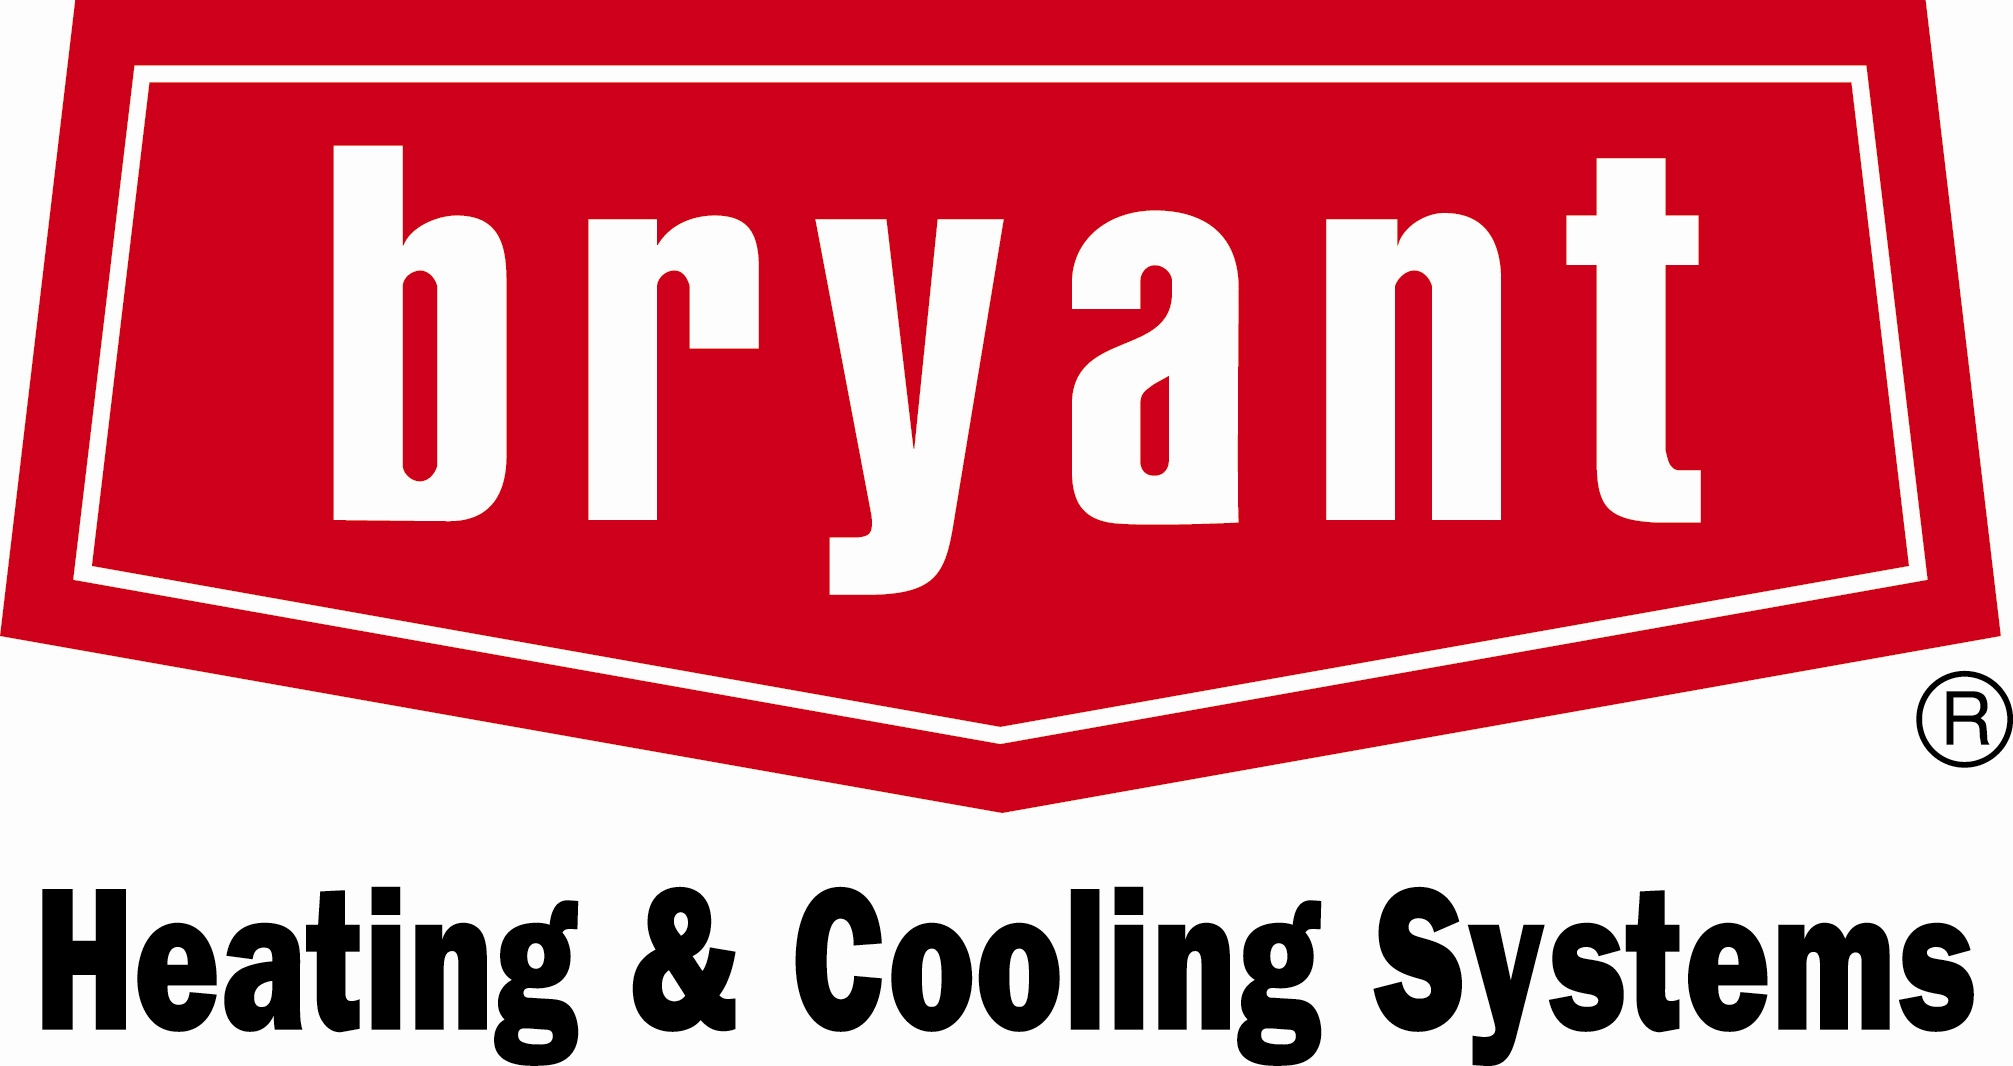 benefits of installing a bryant hvac system | outer banks nc